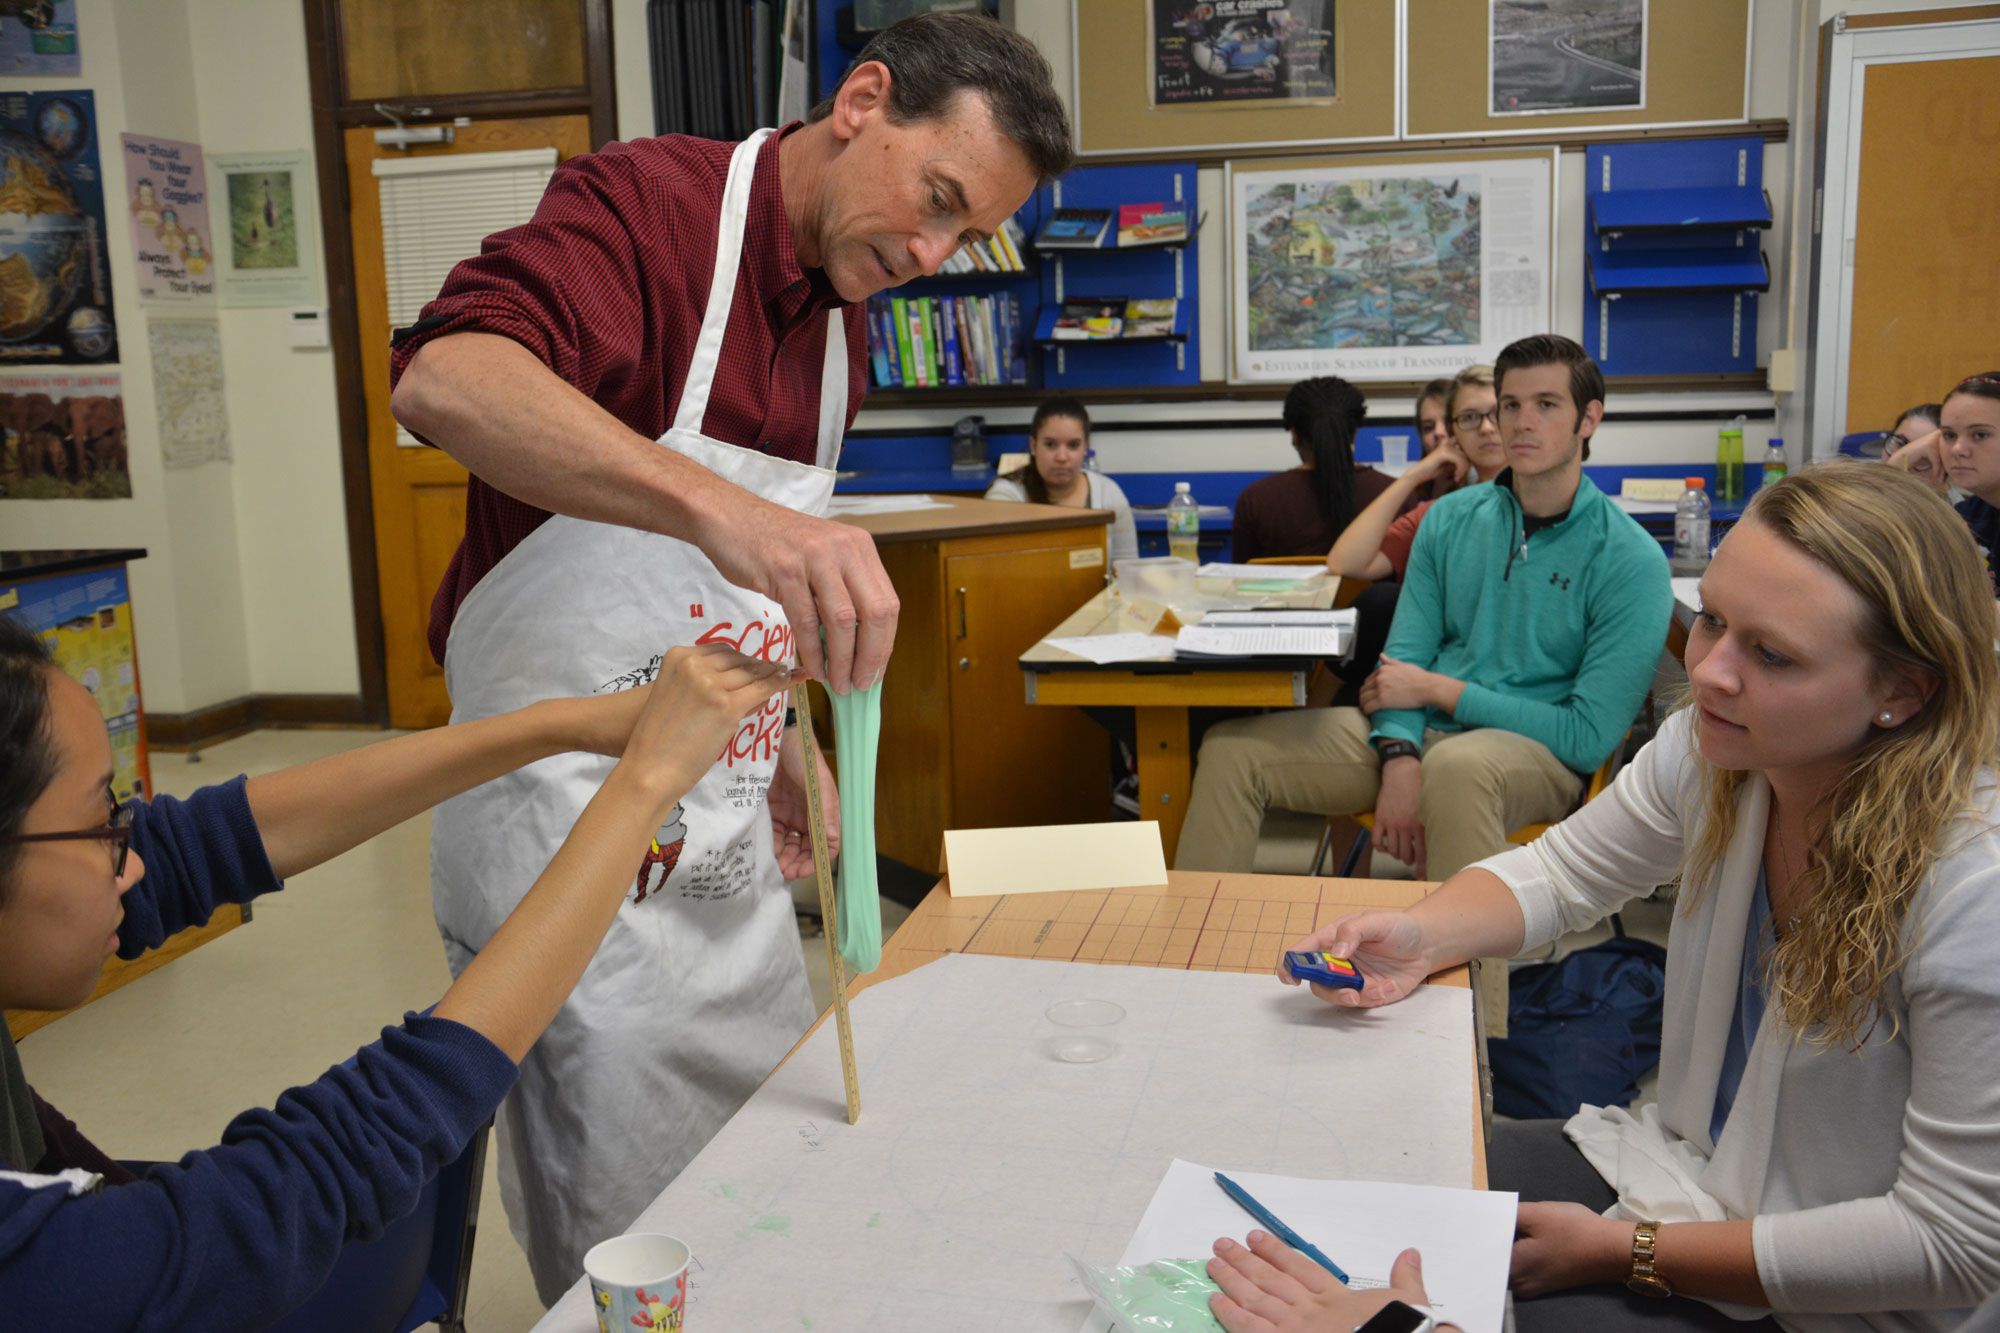 Griff Jones stretching silly putty while a student measures the length of the stretch with a ruler in a classroom.